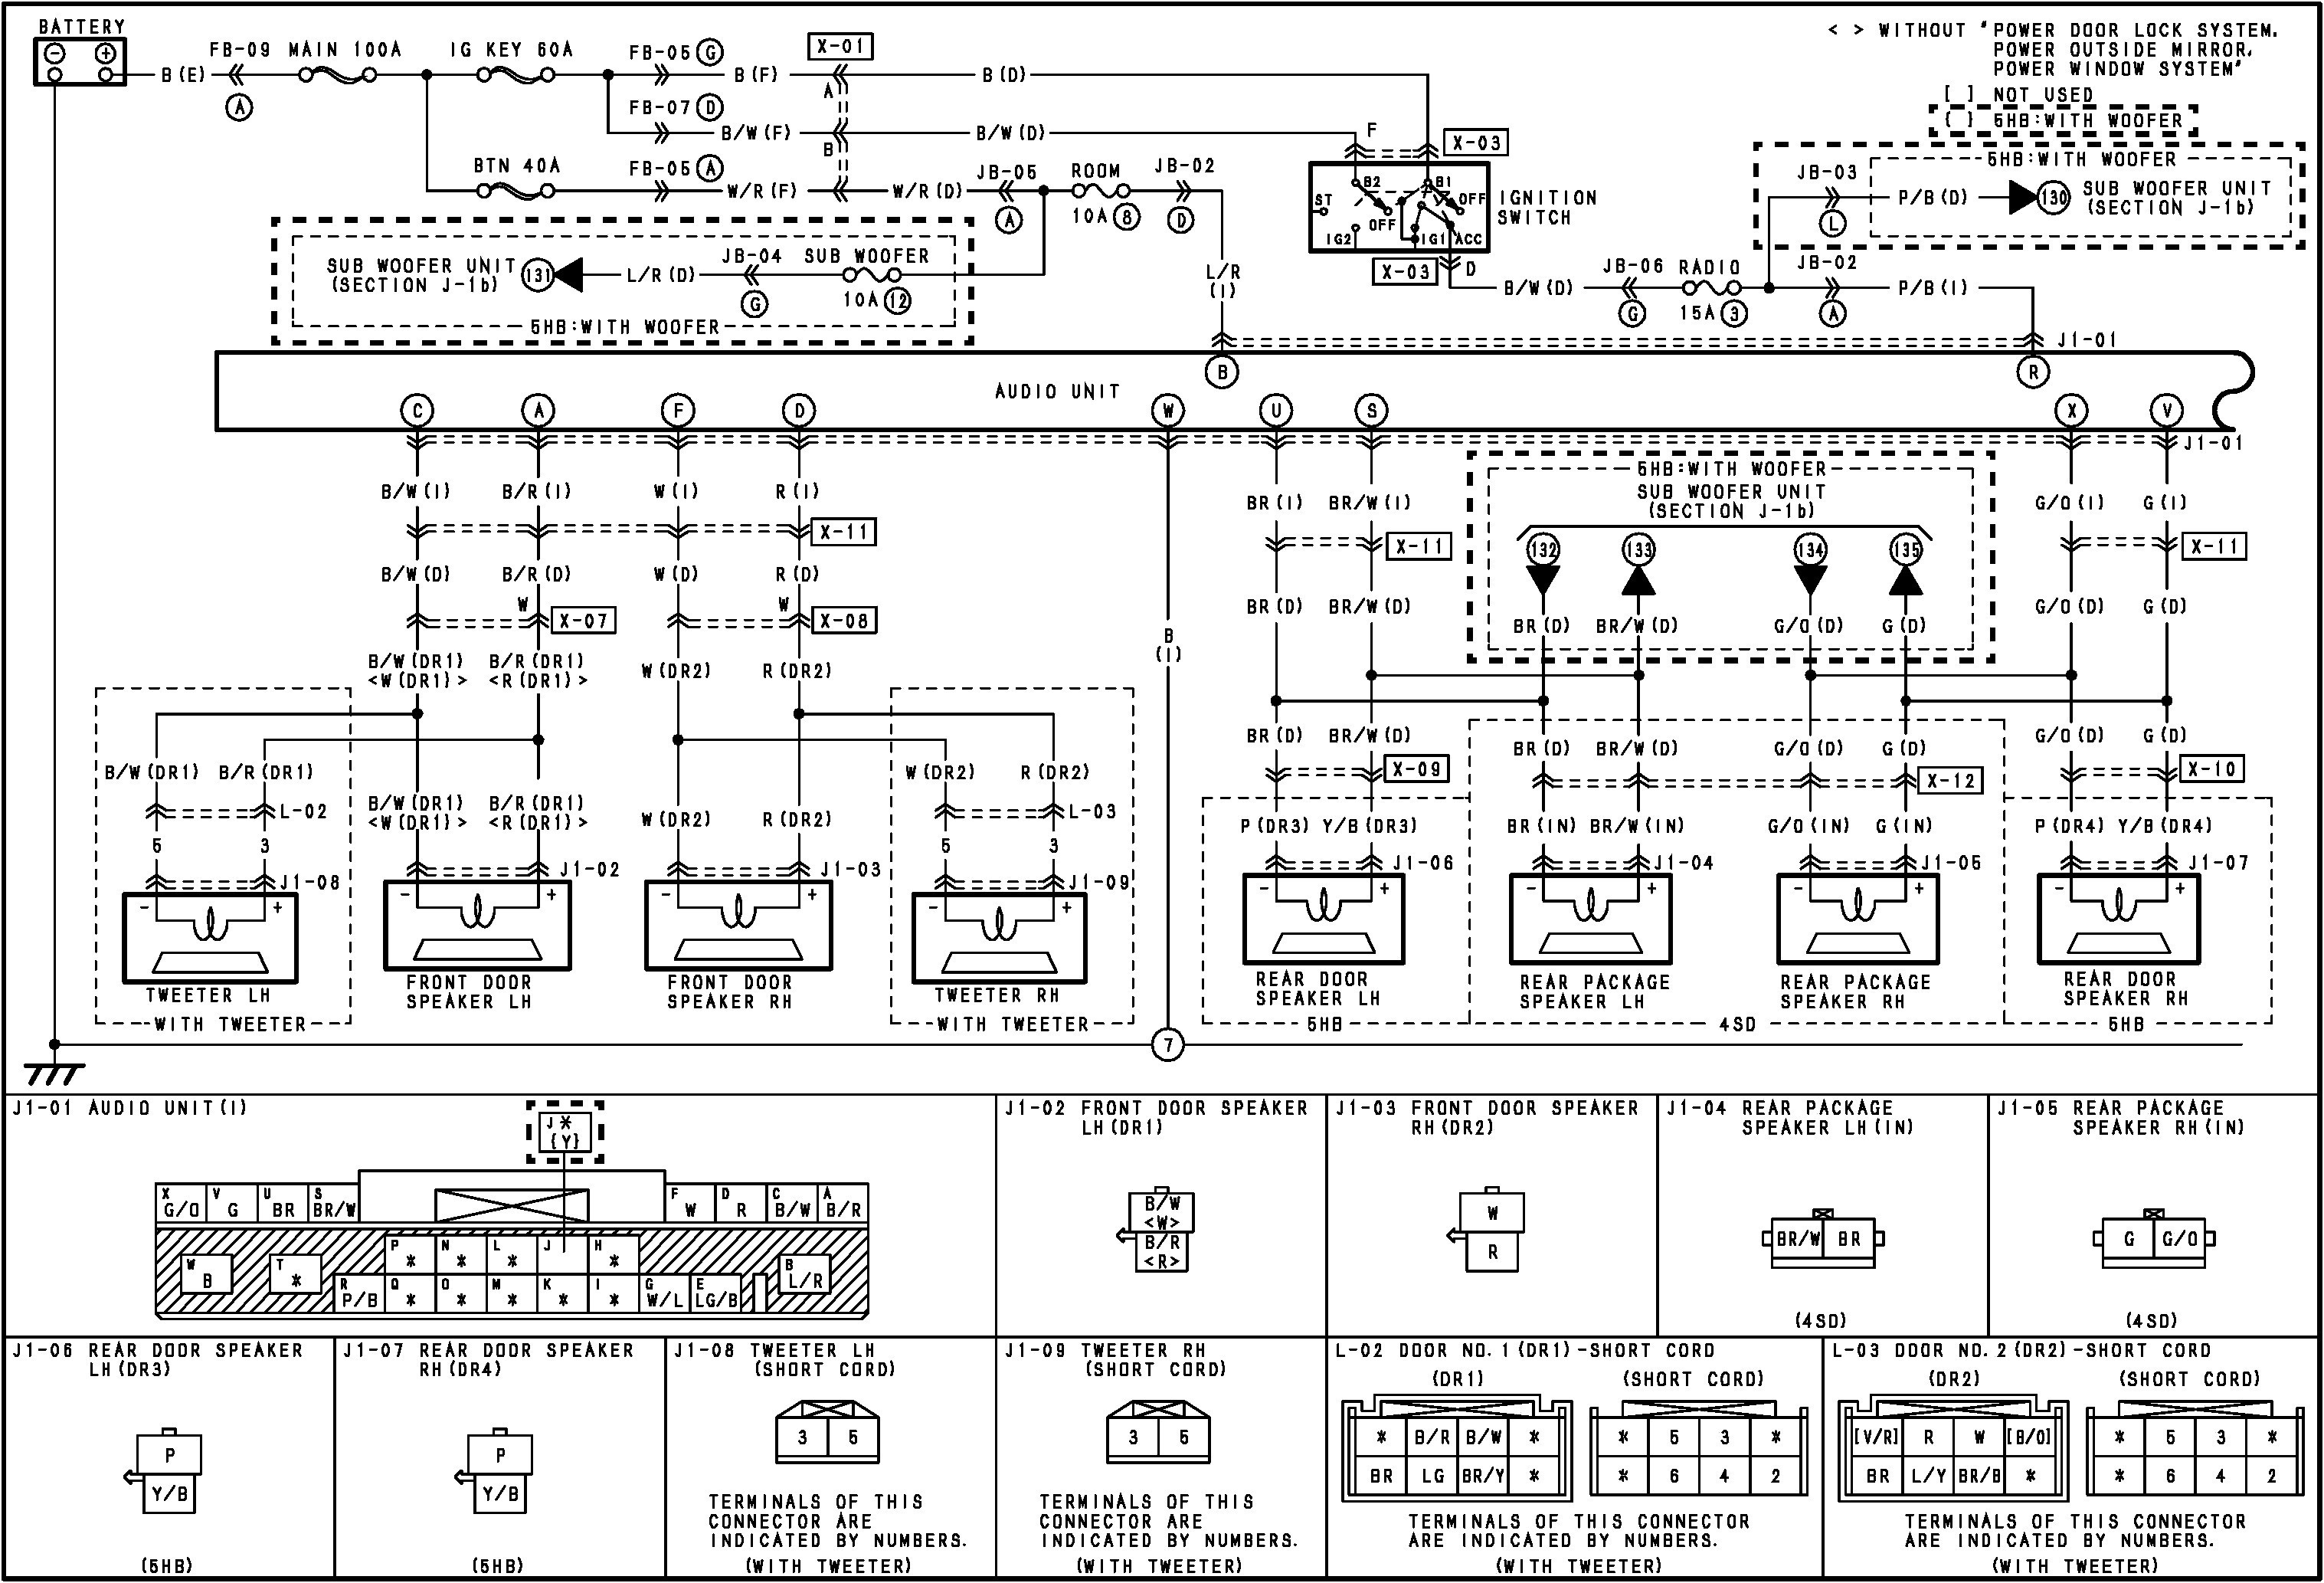 2003 Honda Civic Rear Speaker Wiring Detailed Schematics Diagram Trusted Diagrams Ford Windstar Speakers